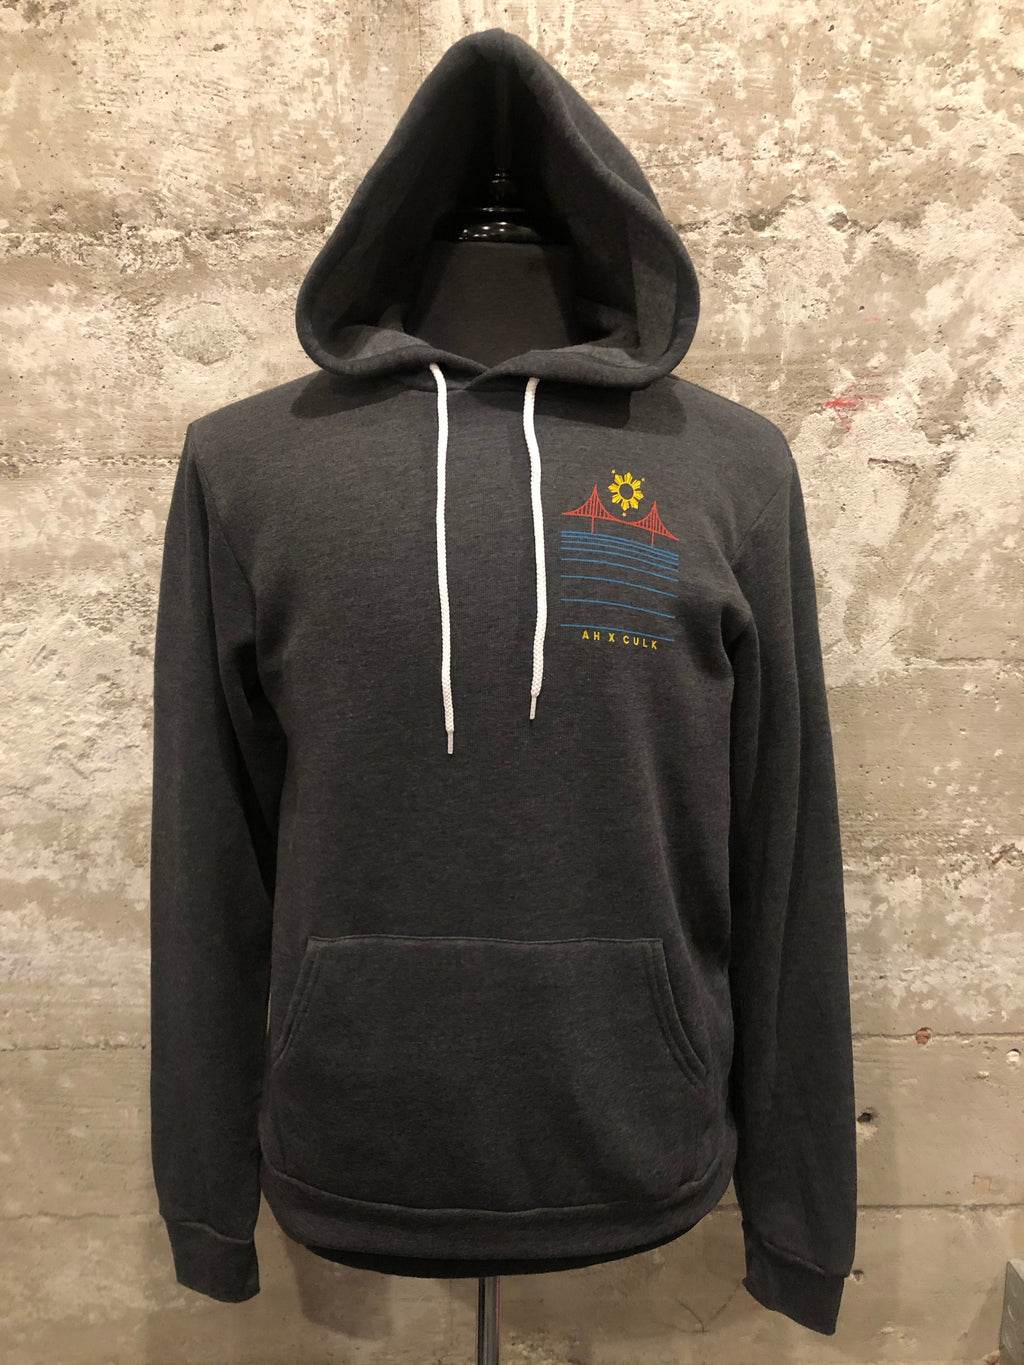 FILIPINX BRIDGE HOODIE - AH EXCLUSIVE (Pull-over Hoodie) - charcoal grey